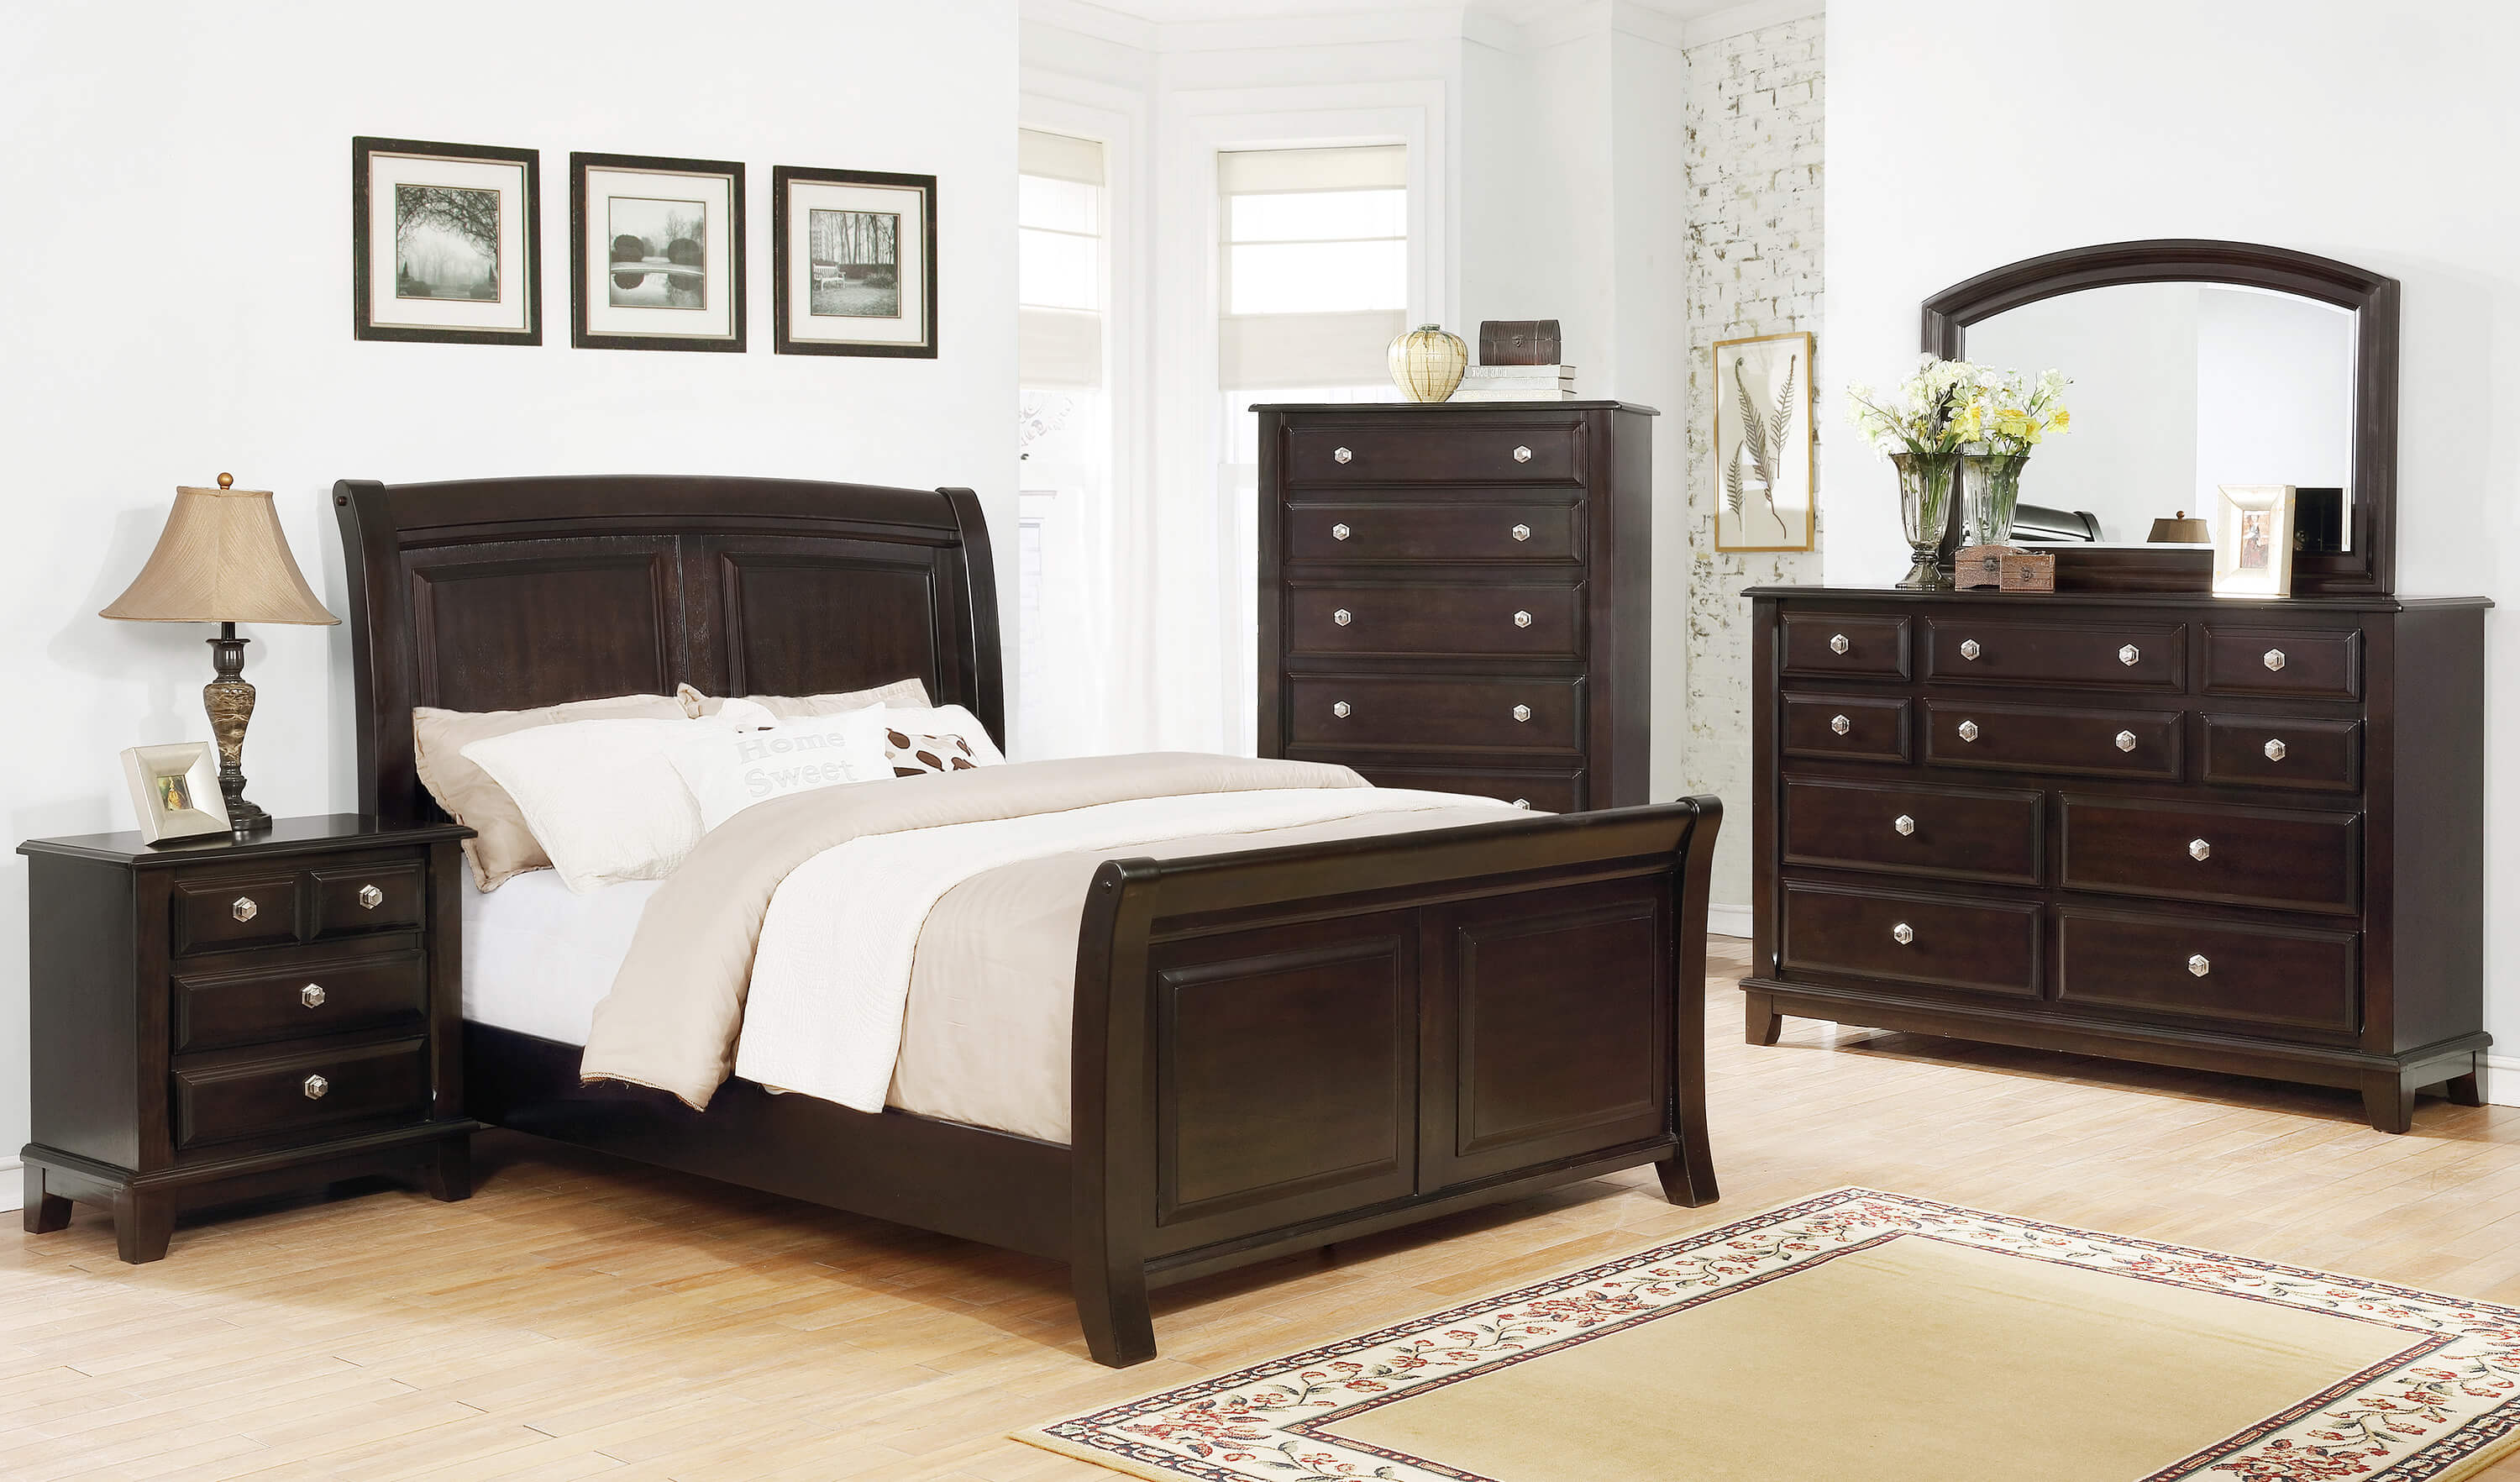 Kenton Dark Cherry Bedroom Set | Bedroom Furniture Sets